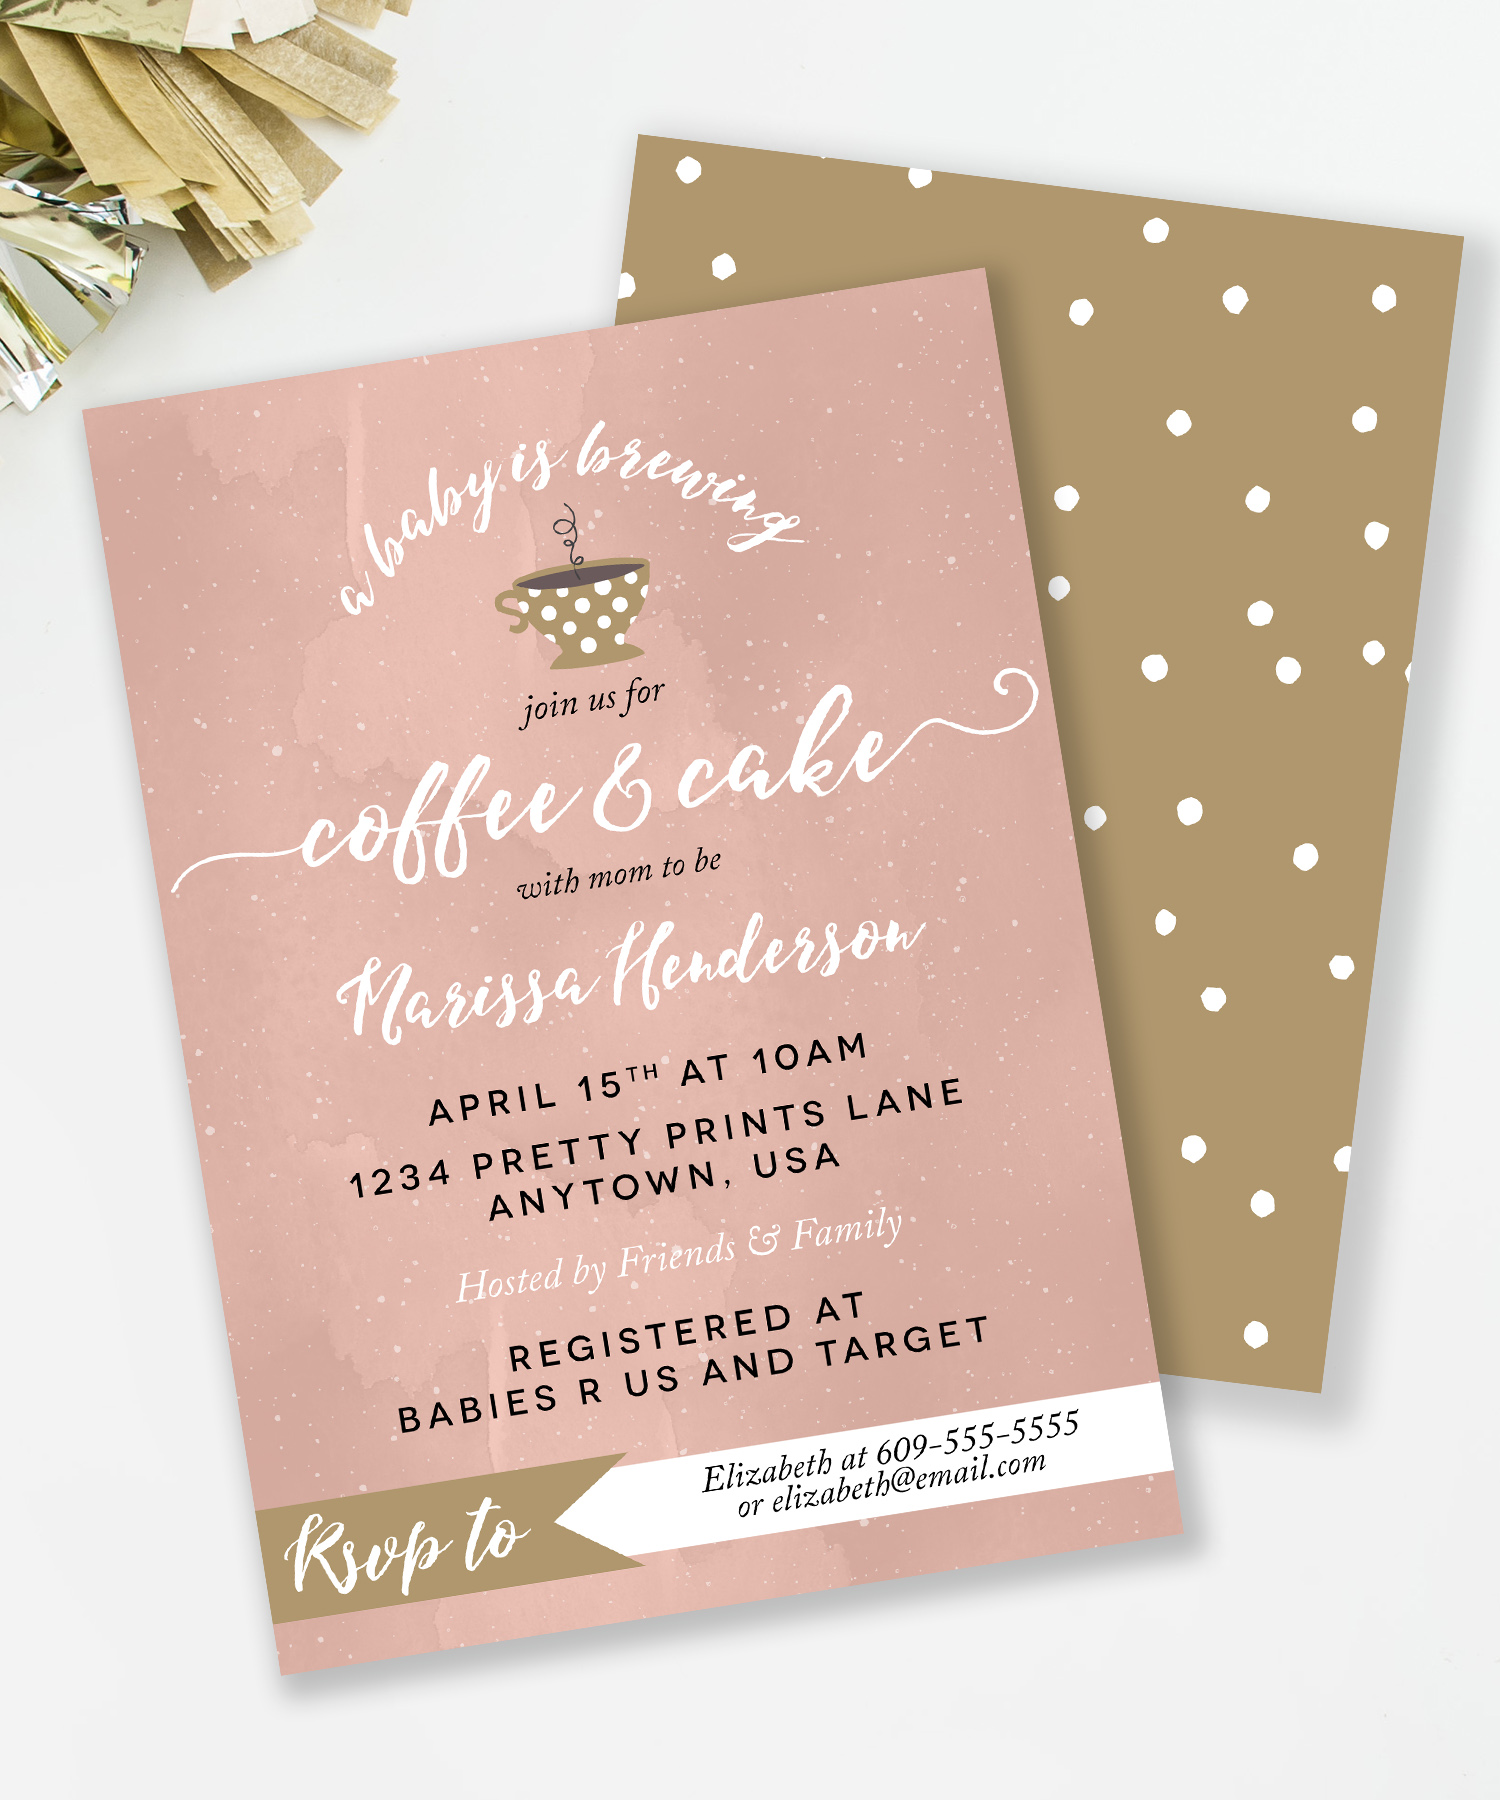 Blush and Gold Coffee baby shower invite from mkkmdesigns